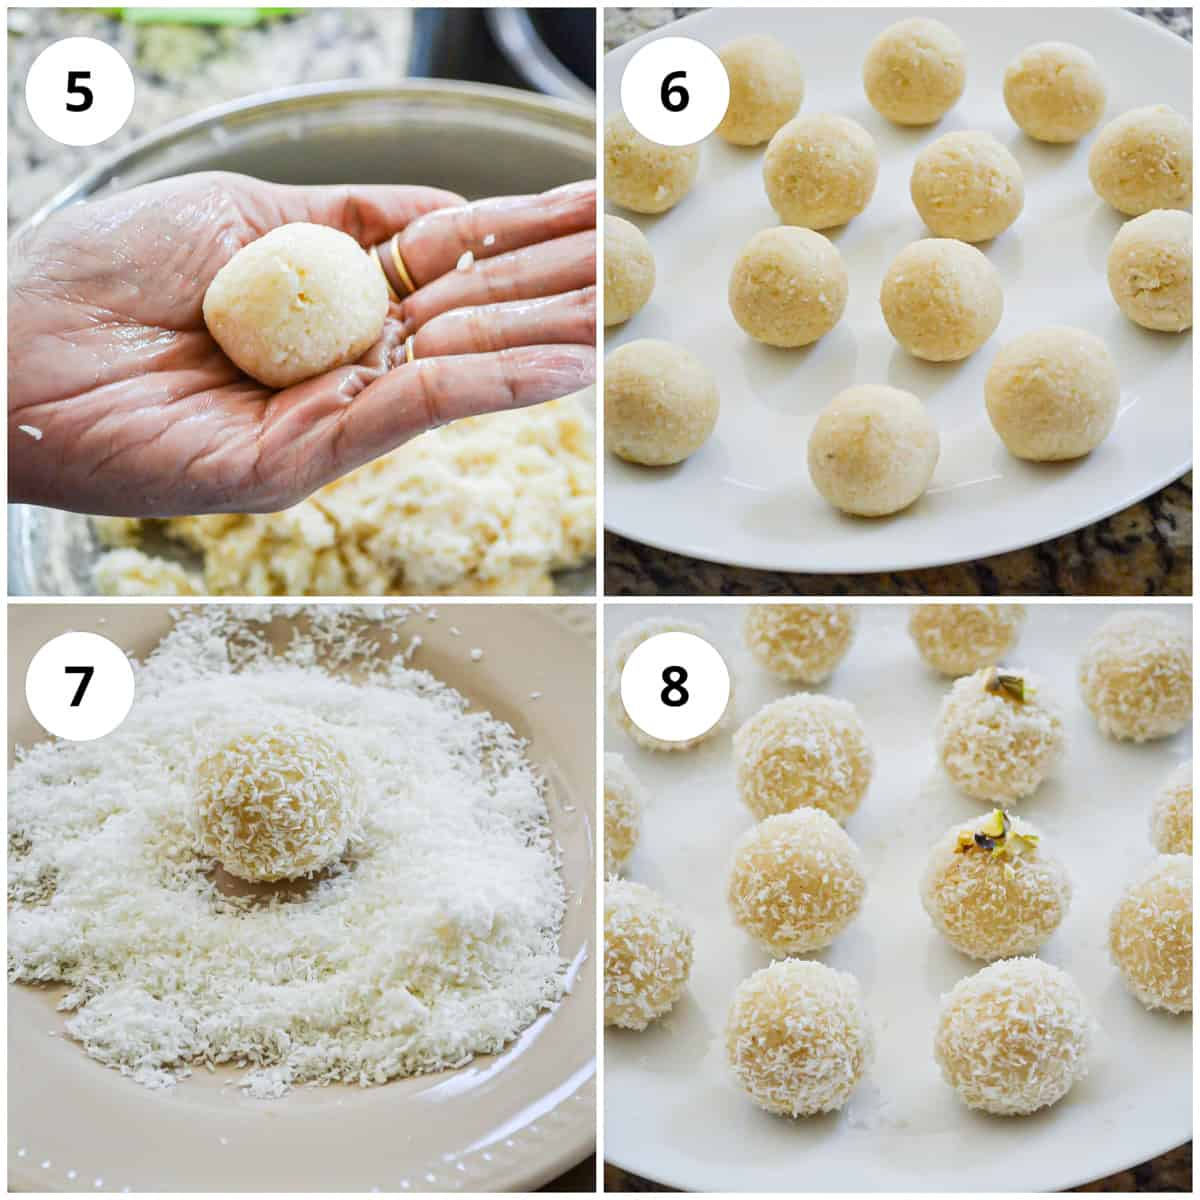 Process of making ladoo (balls) and rolling them into desiccated coconut